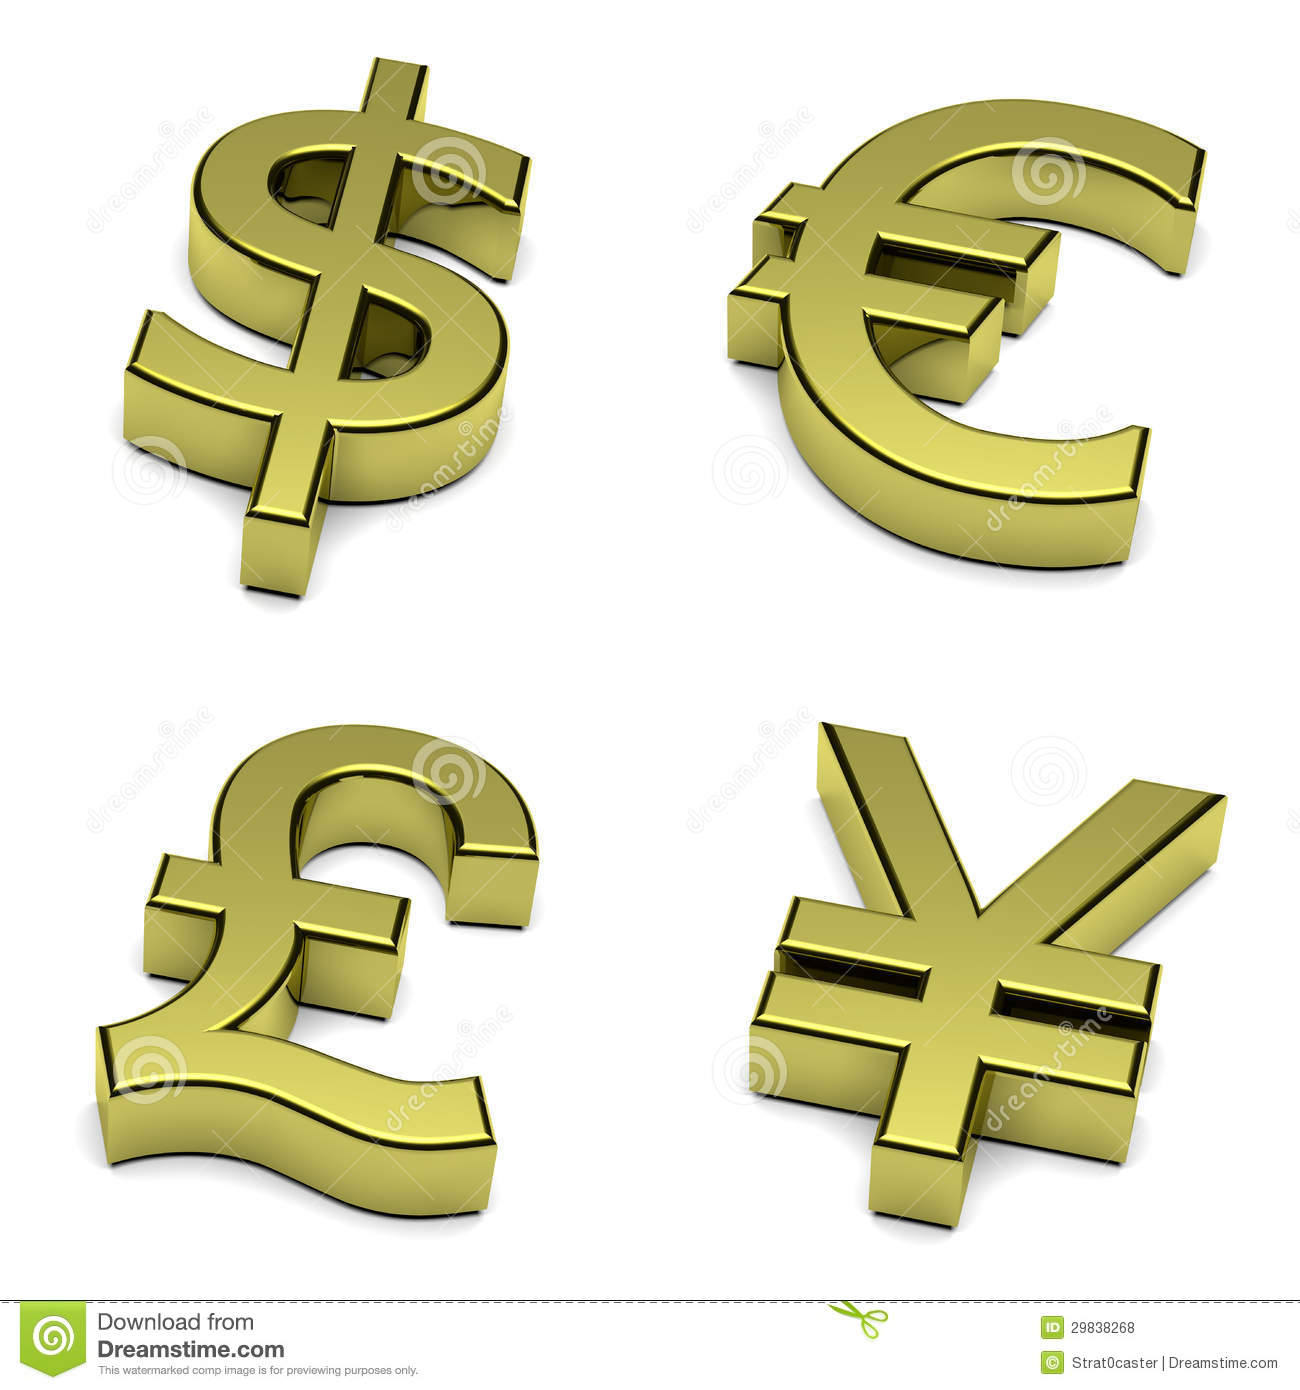 sony united states dollar and yen The us dollar is the official currency for the united states of america and is one of the world's most powerful currencies ranked as the number one traded currency in the world, it is the largest reserve currency.